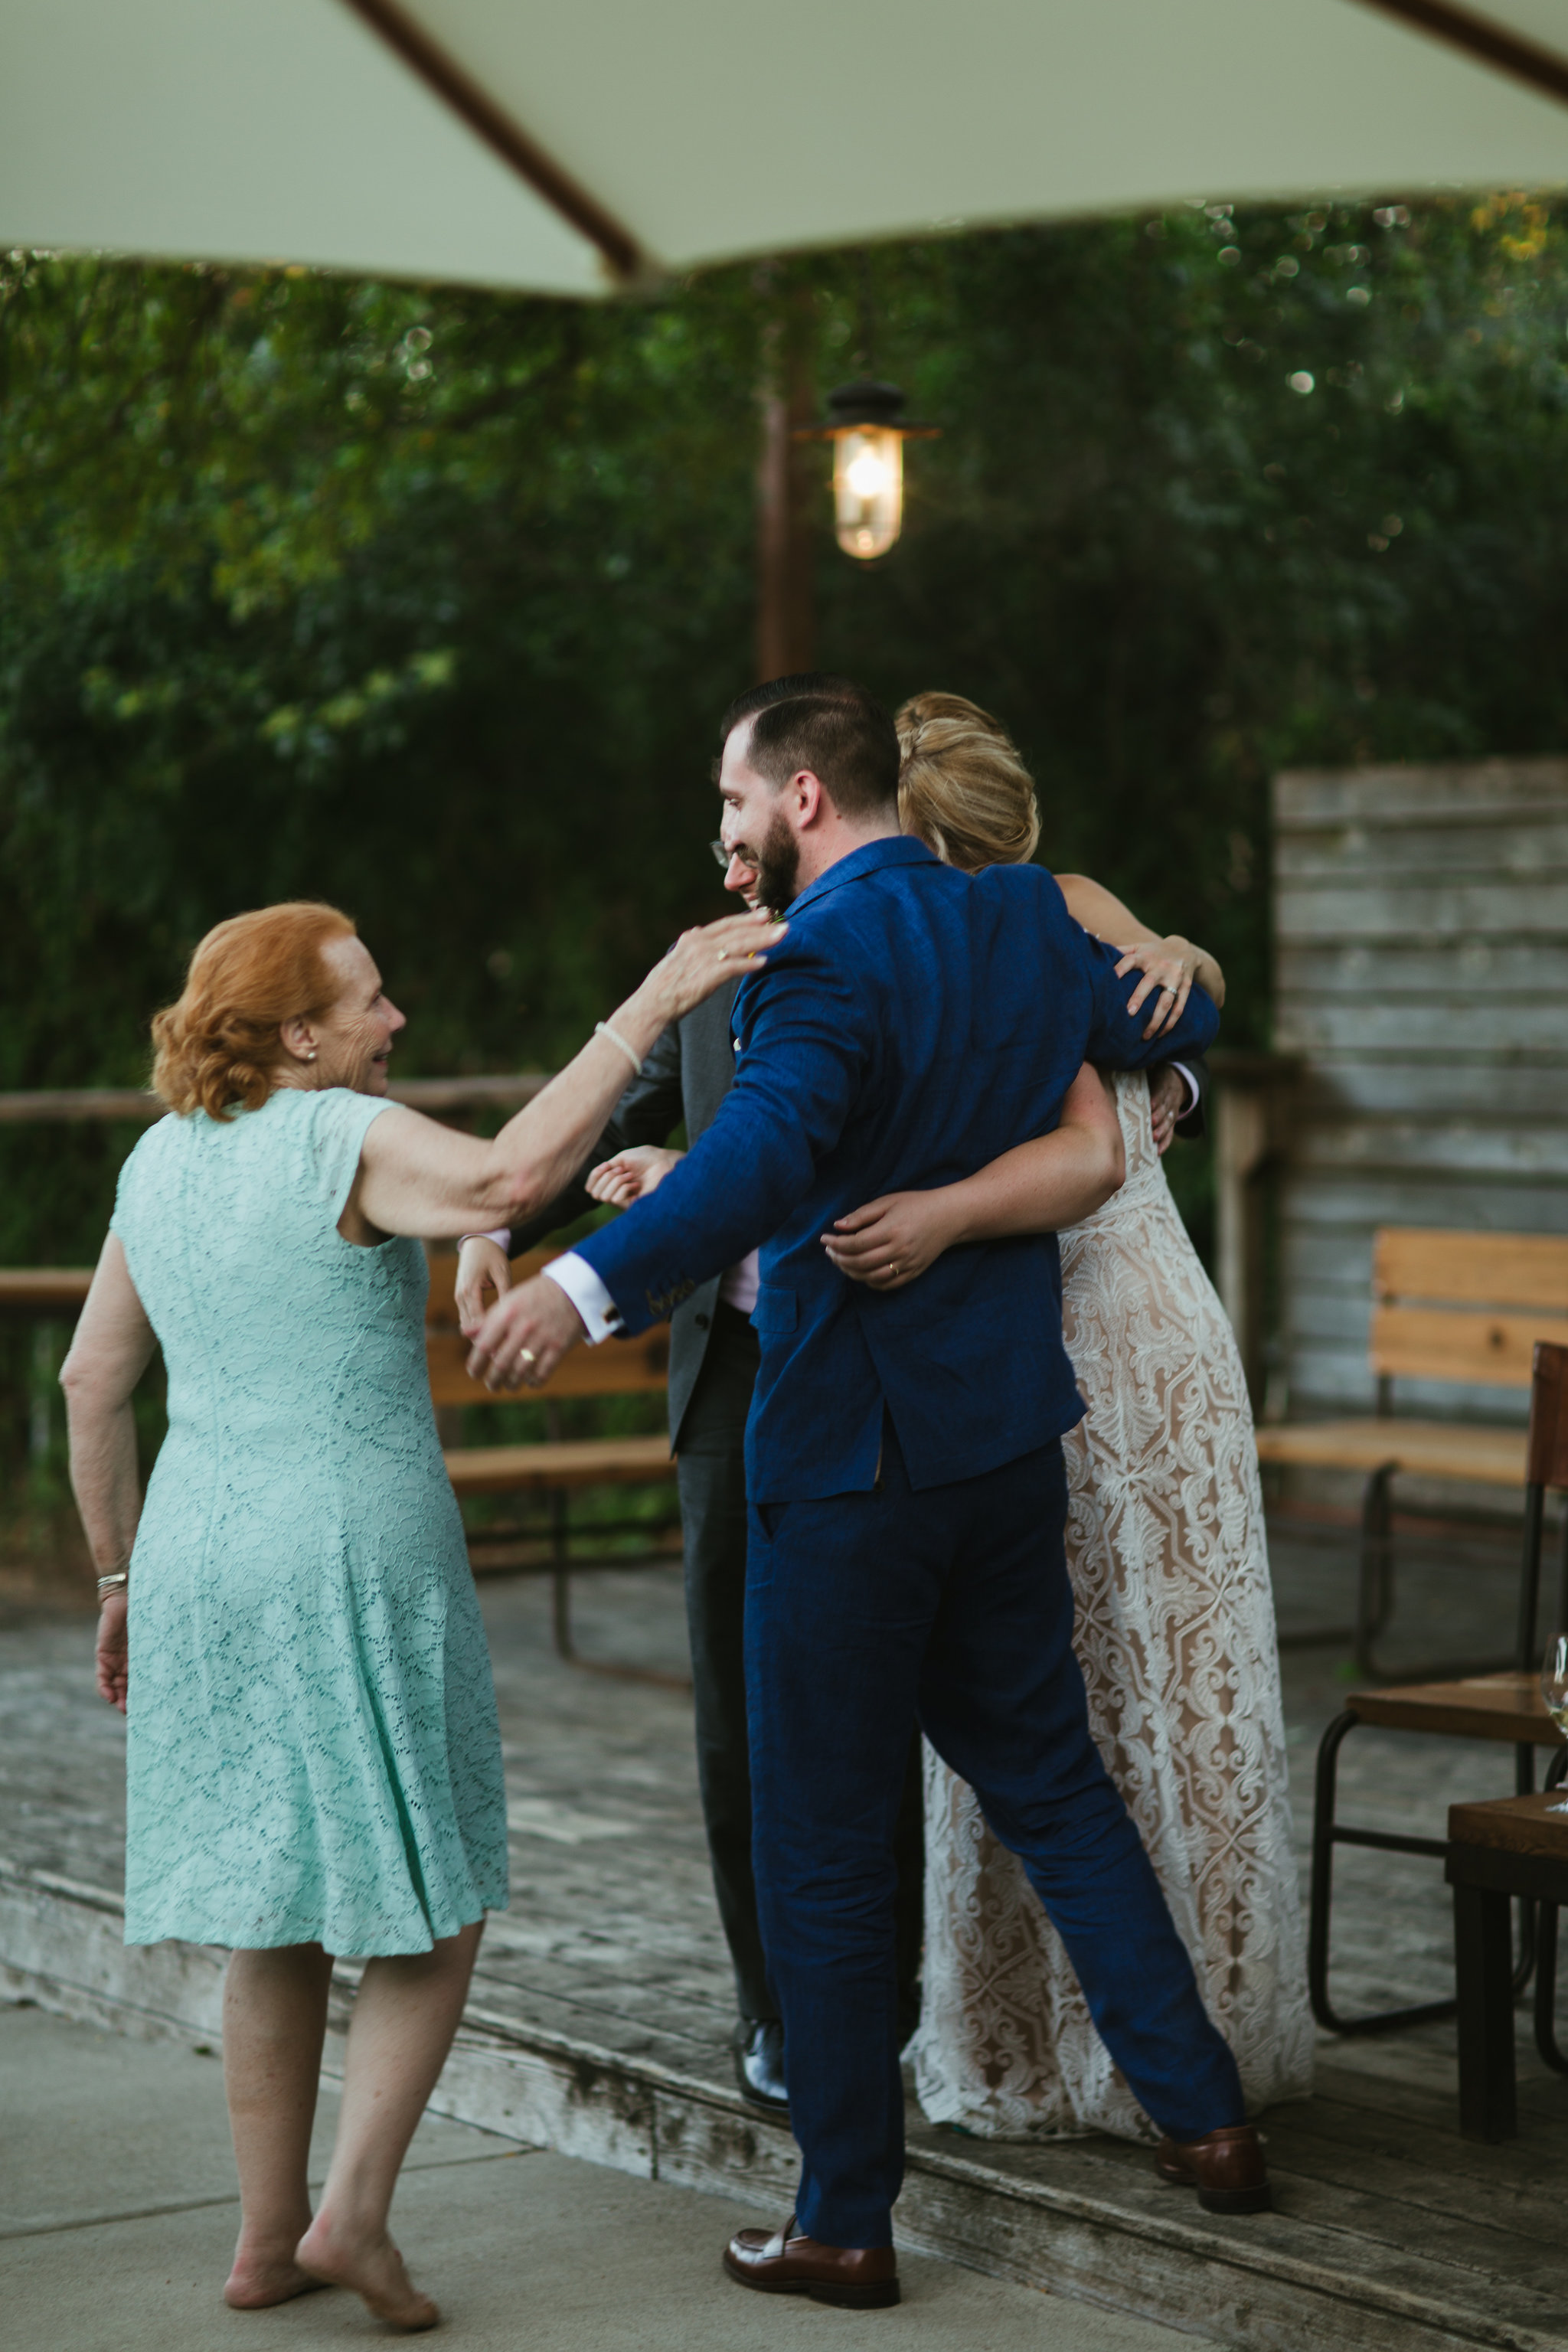 Paige-Newton-Intimate-Wedding-Photographer-Contigo-Wedding-Austin-Texas0081.jpg